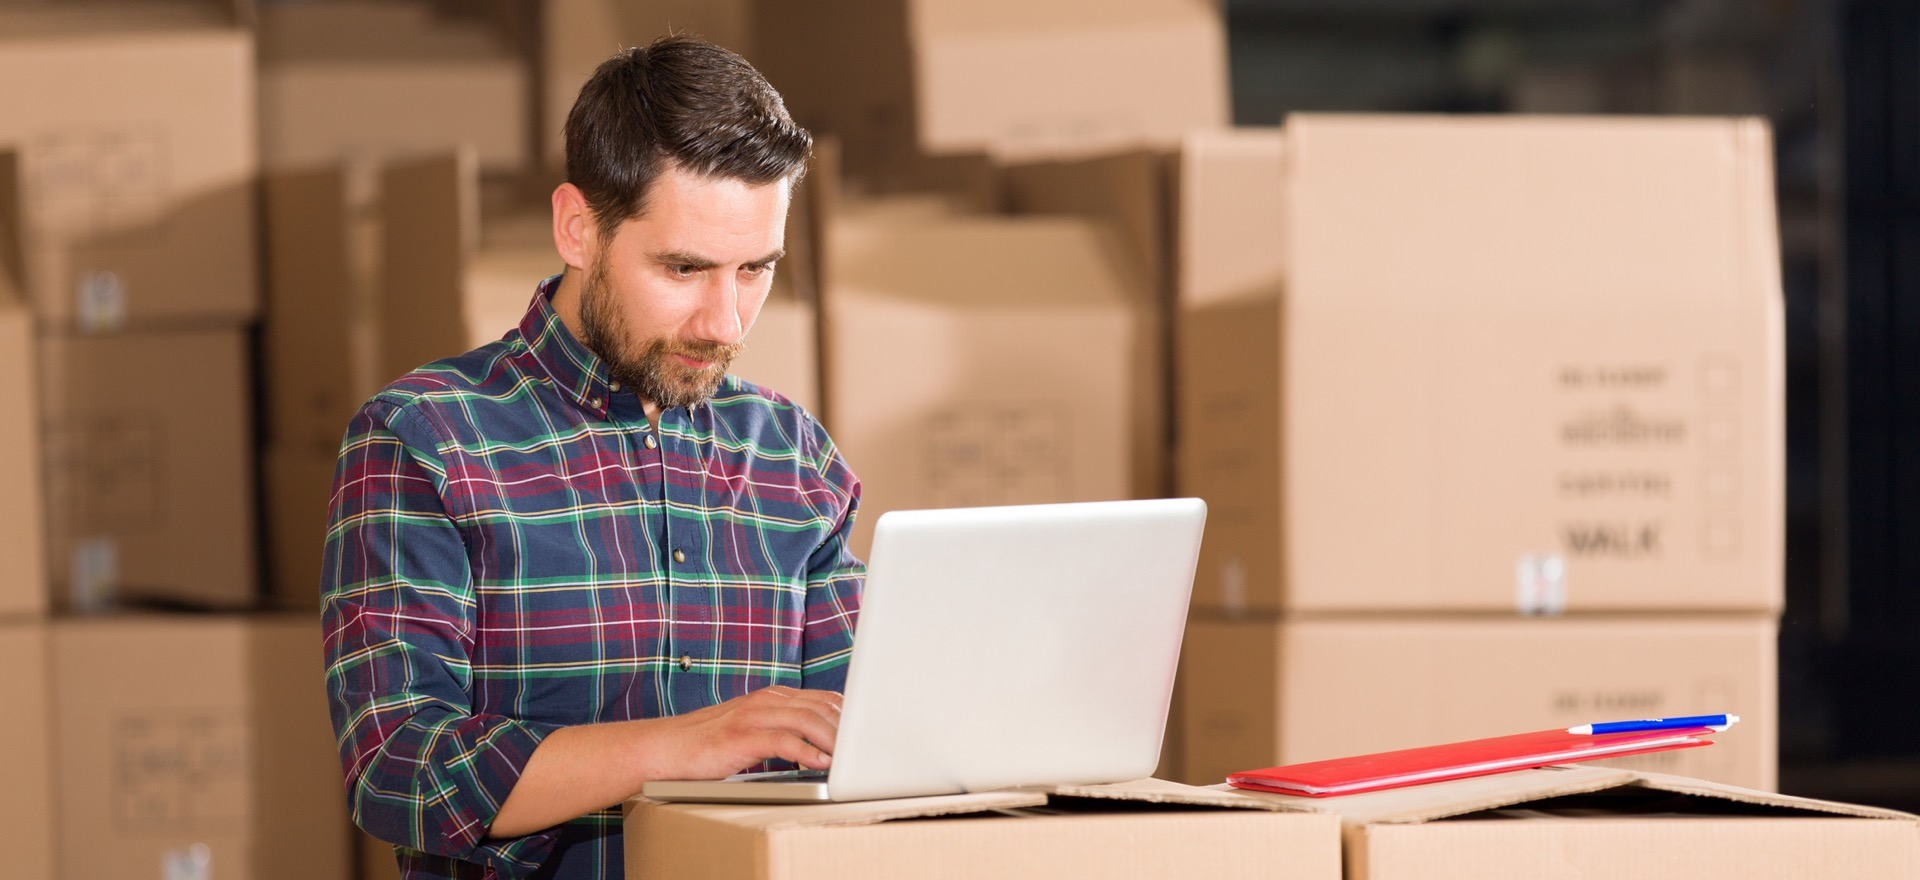 Small Business Inventory and Inventory Management Tips